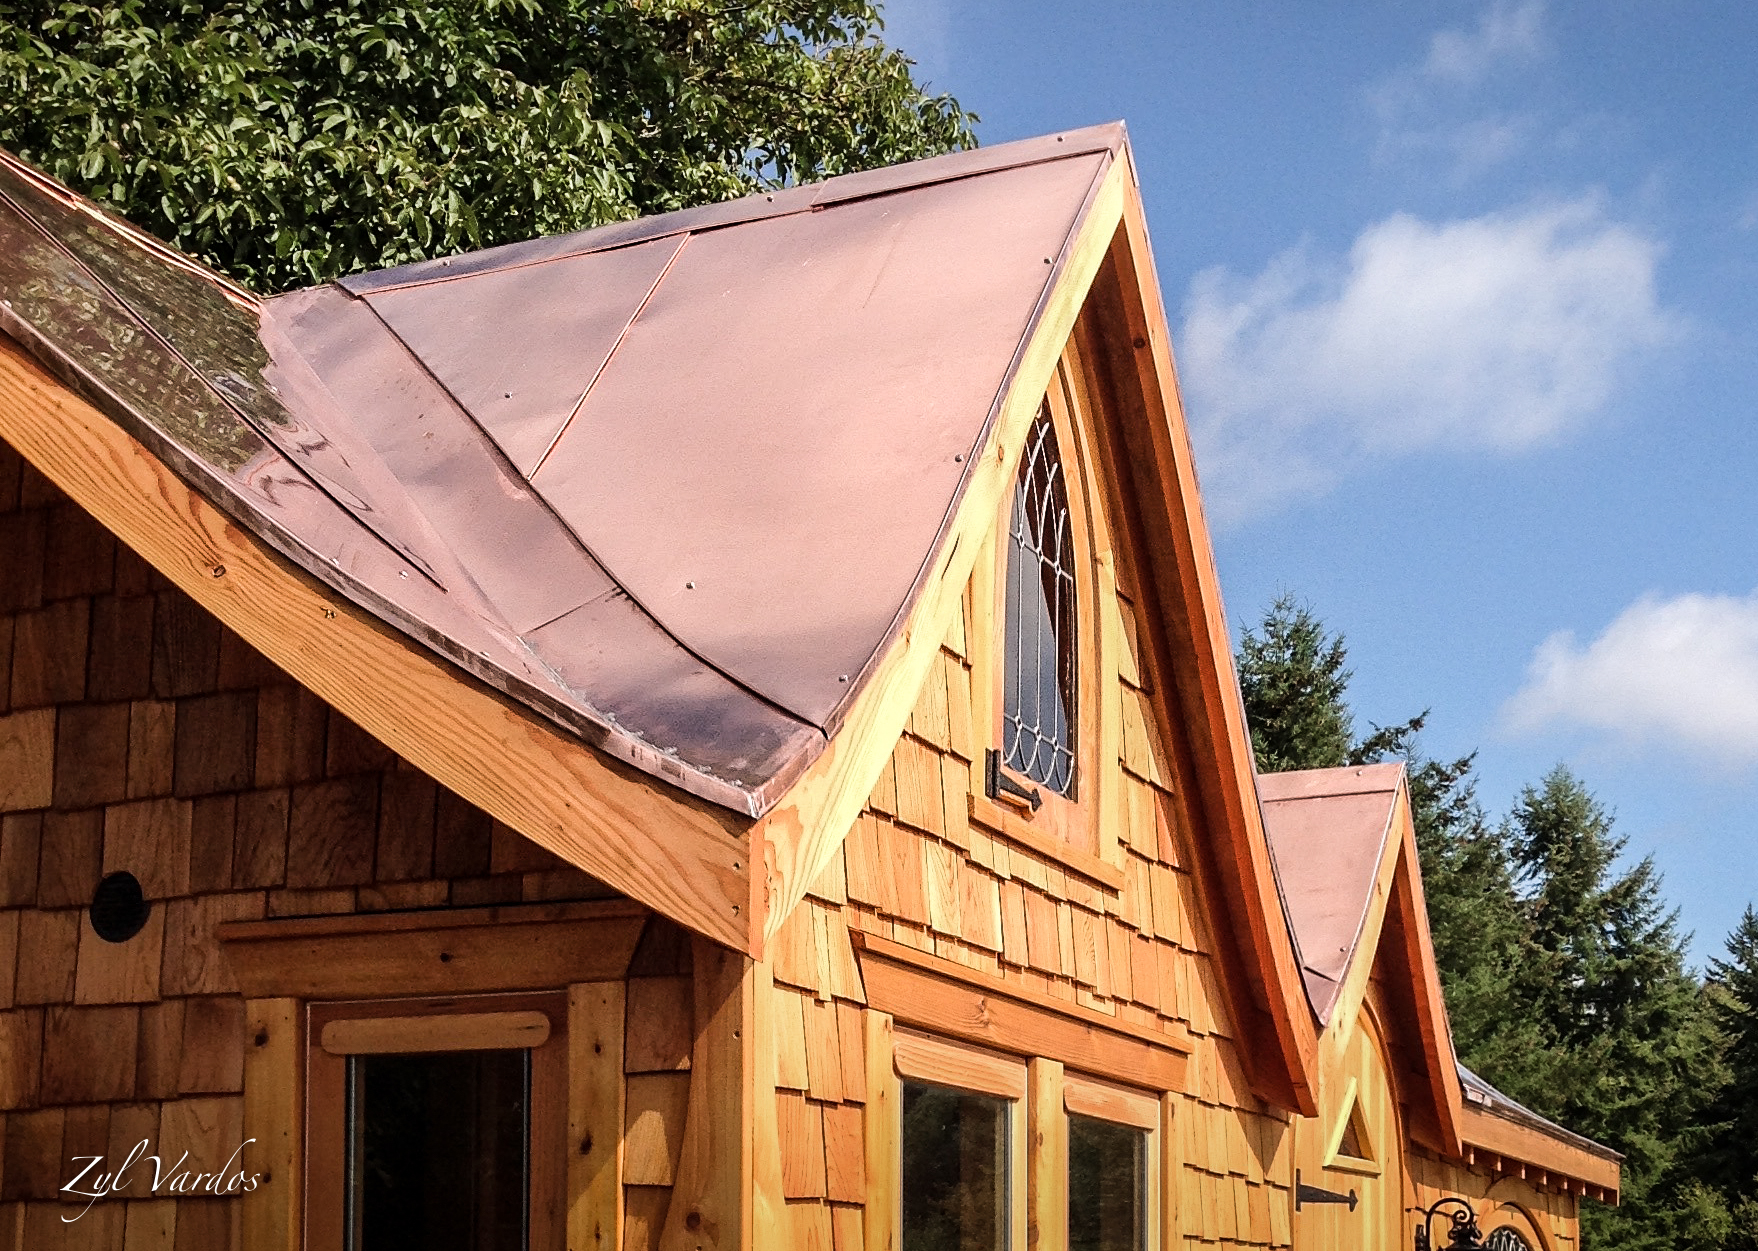 Hand-fabricated copper and steel roofing - We achieve unique and weatherly roof designs by hand-fabricating them from raw materials. We have 25 years experience in custom residential roof systems.